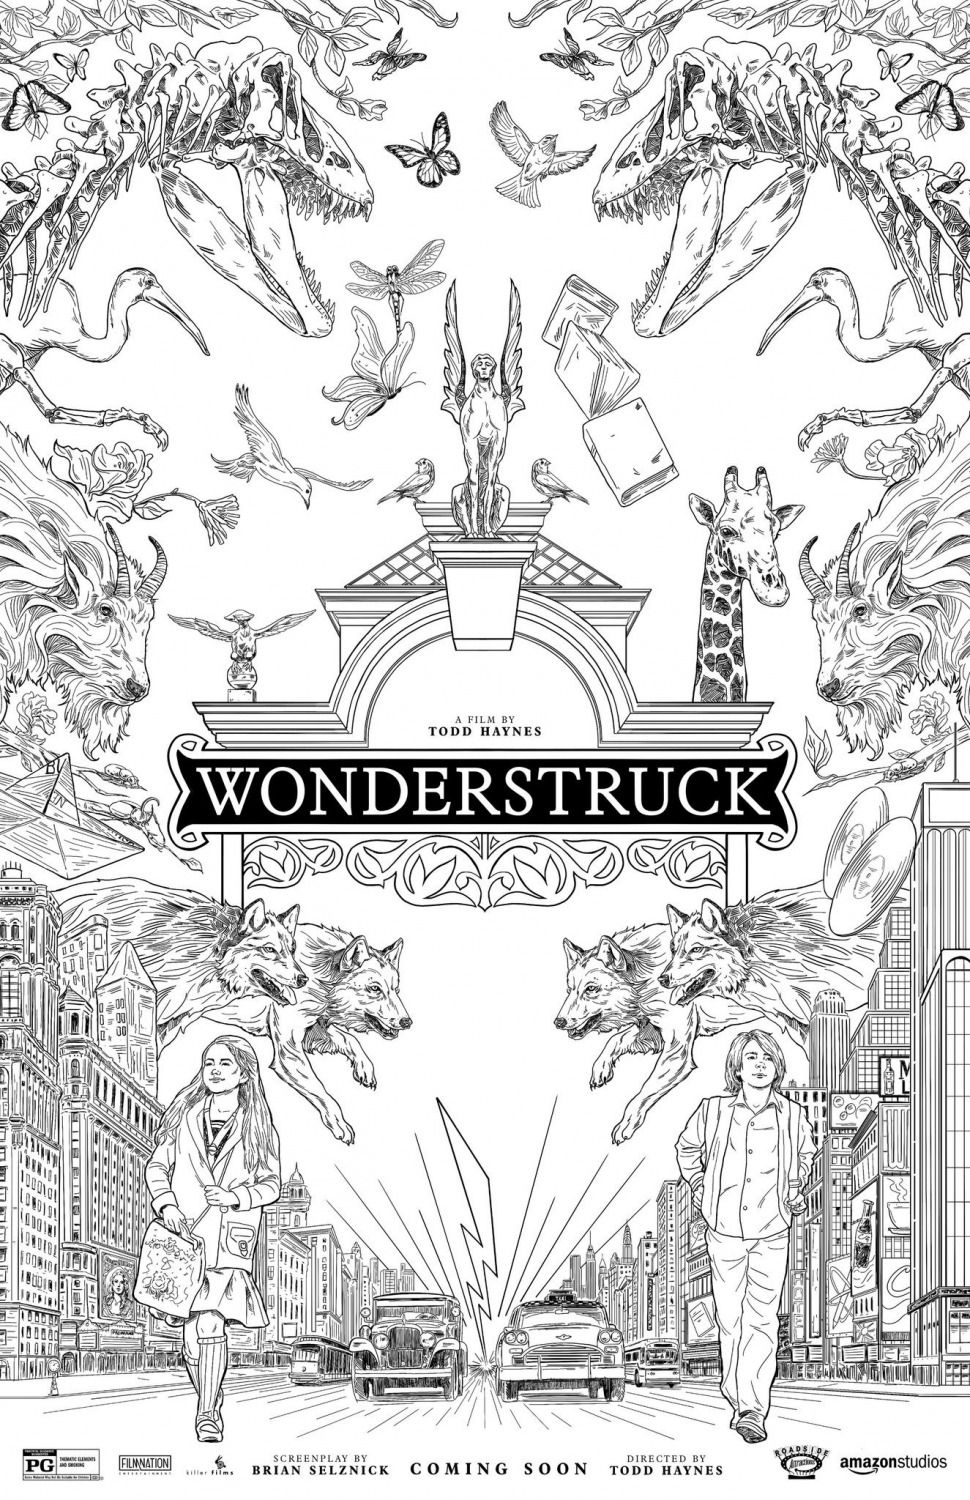 Season Film Festival: Wonderstruck